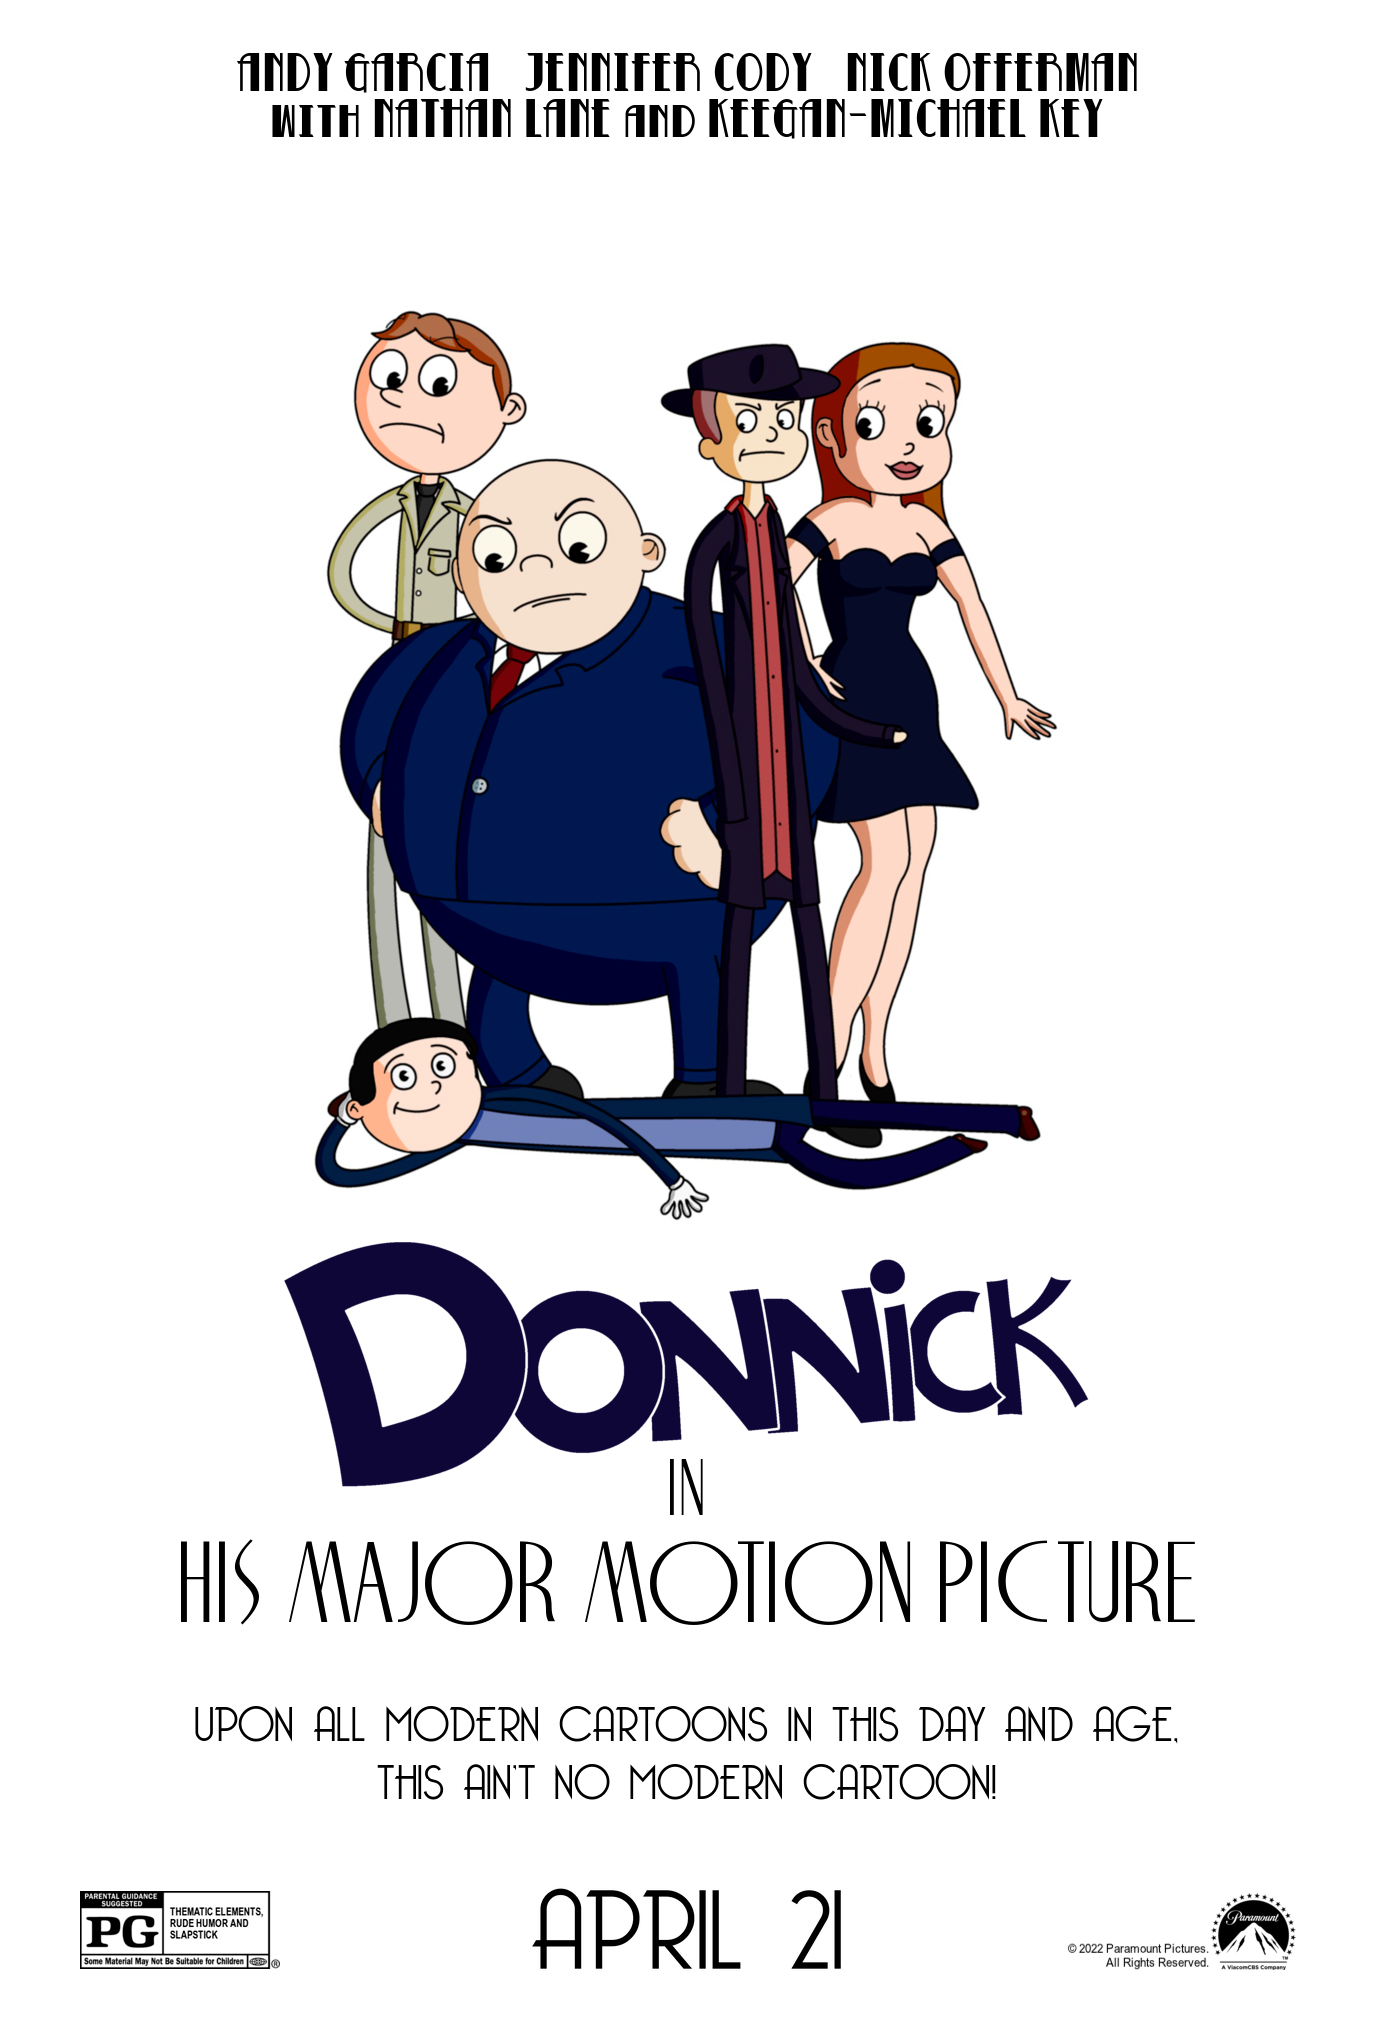 Donnick's Major Motion Picture